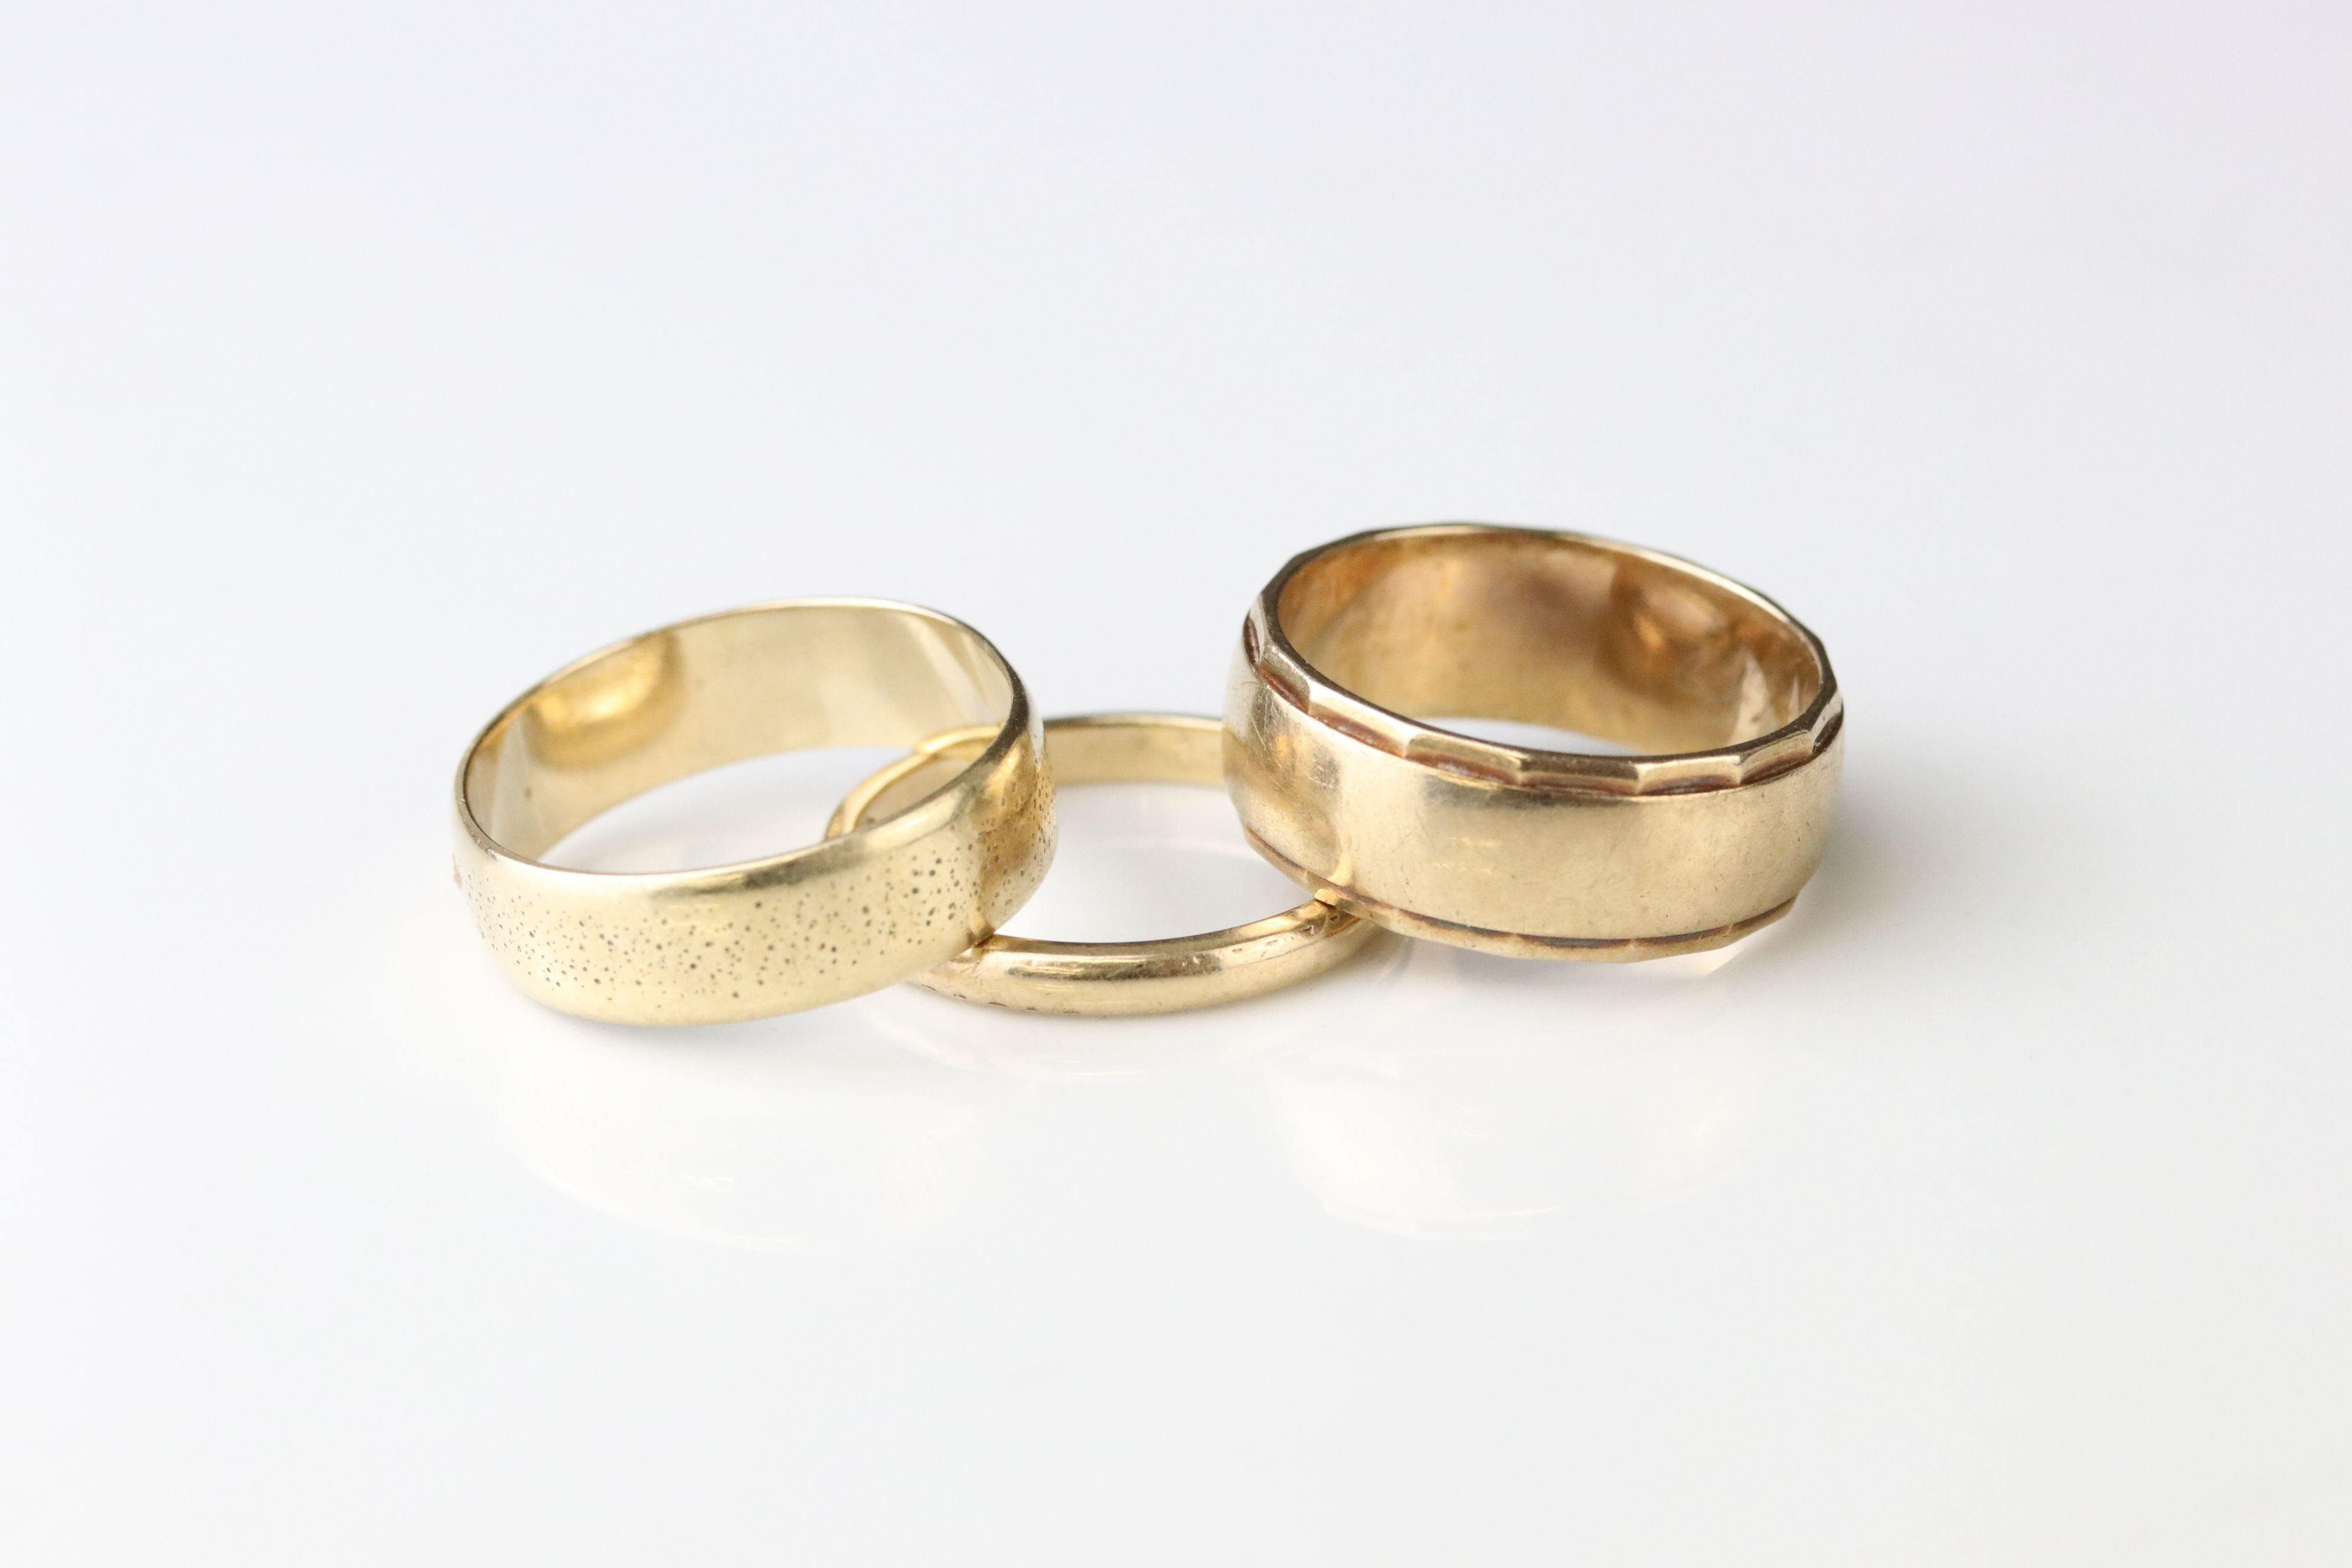 9ct yellow gold wedding band, width approx 2mm, ring size M½, together with a 9ct yellow gold